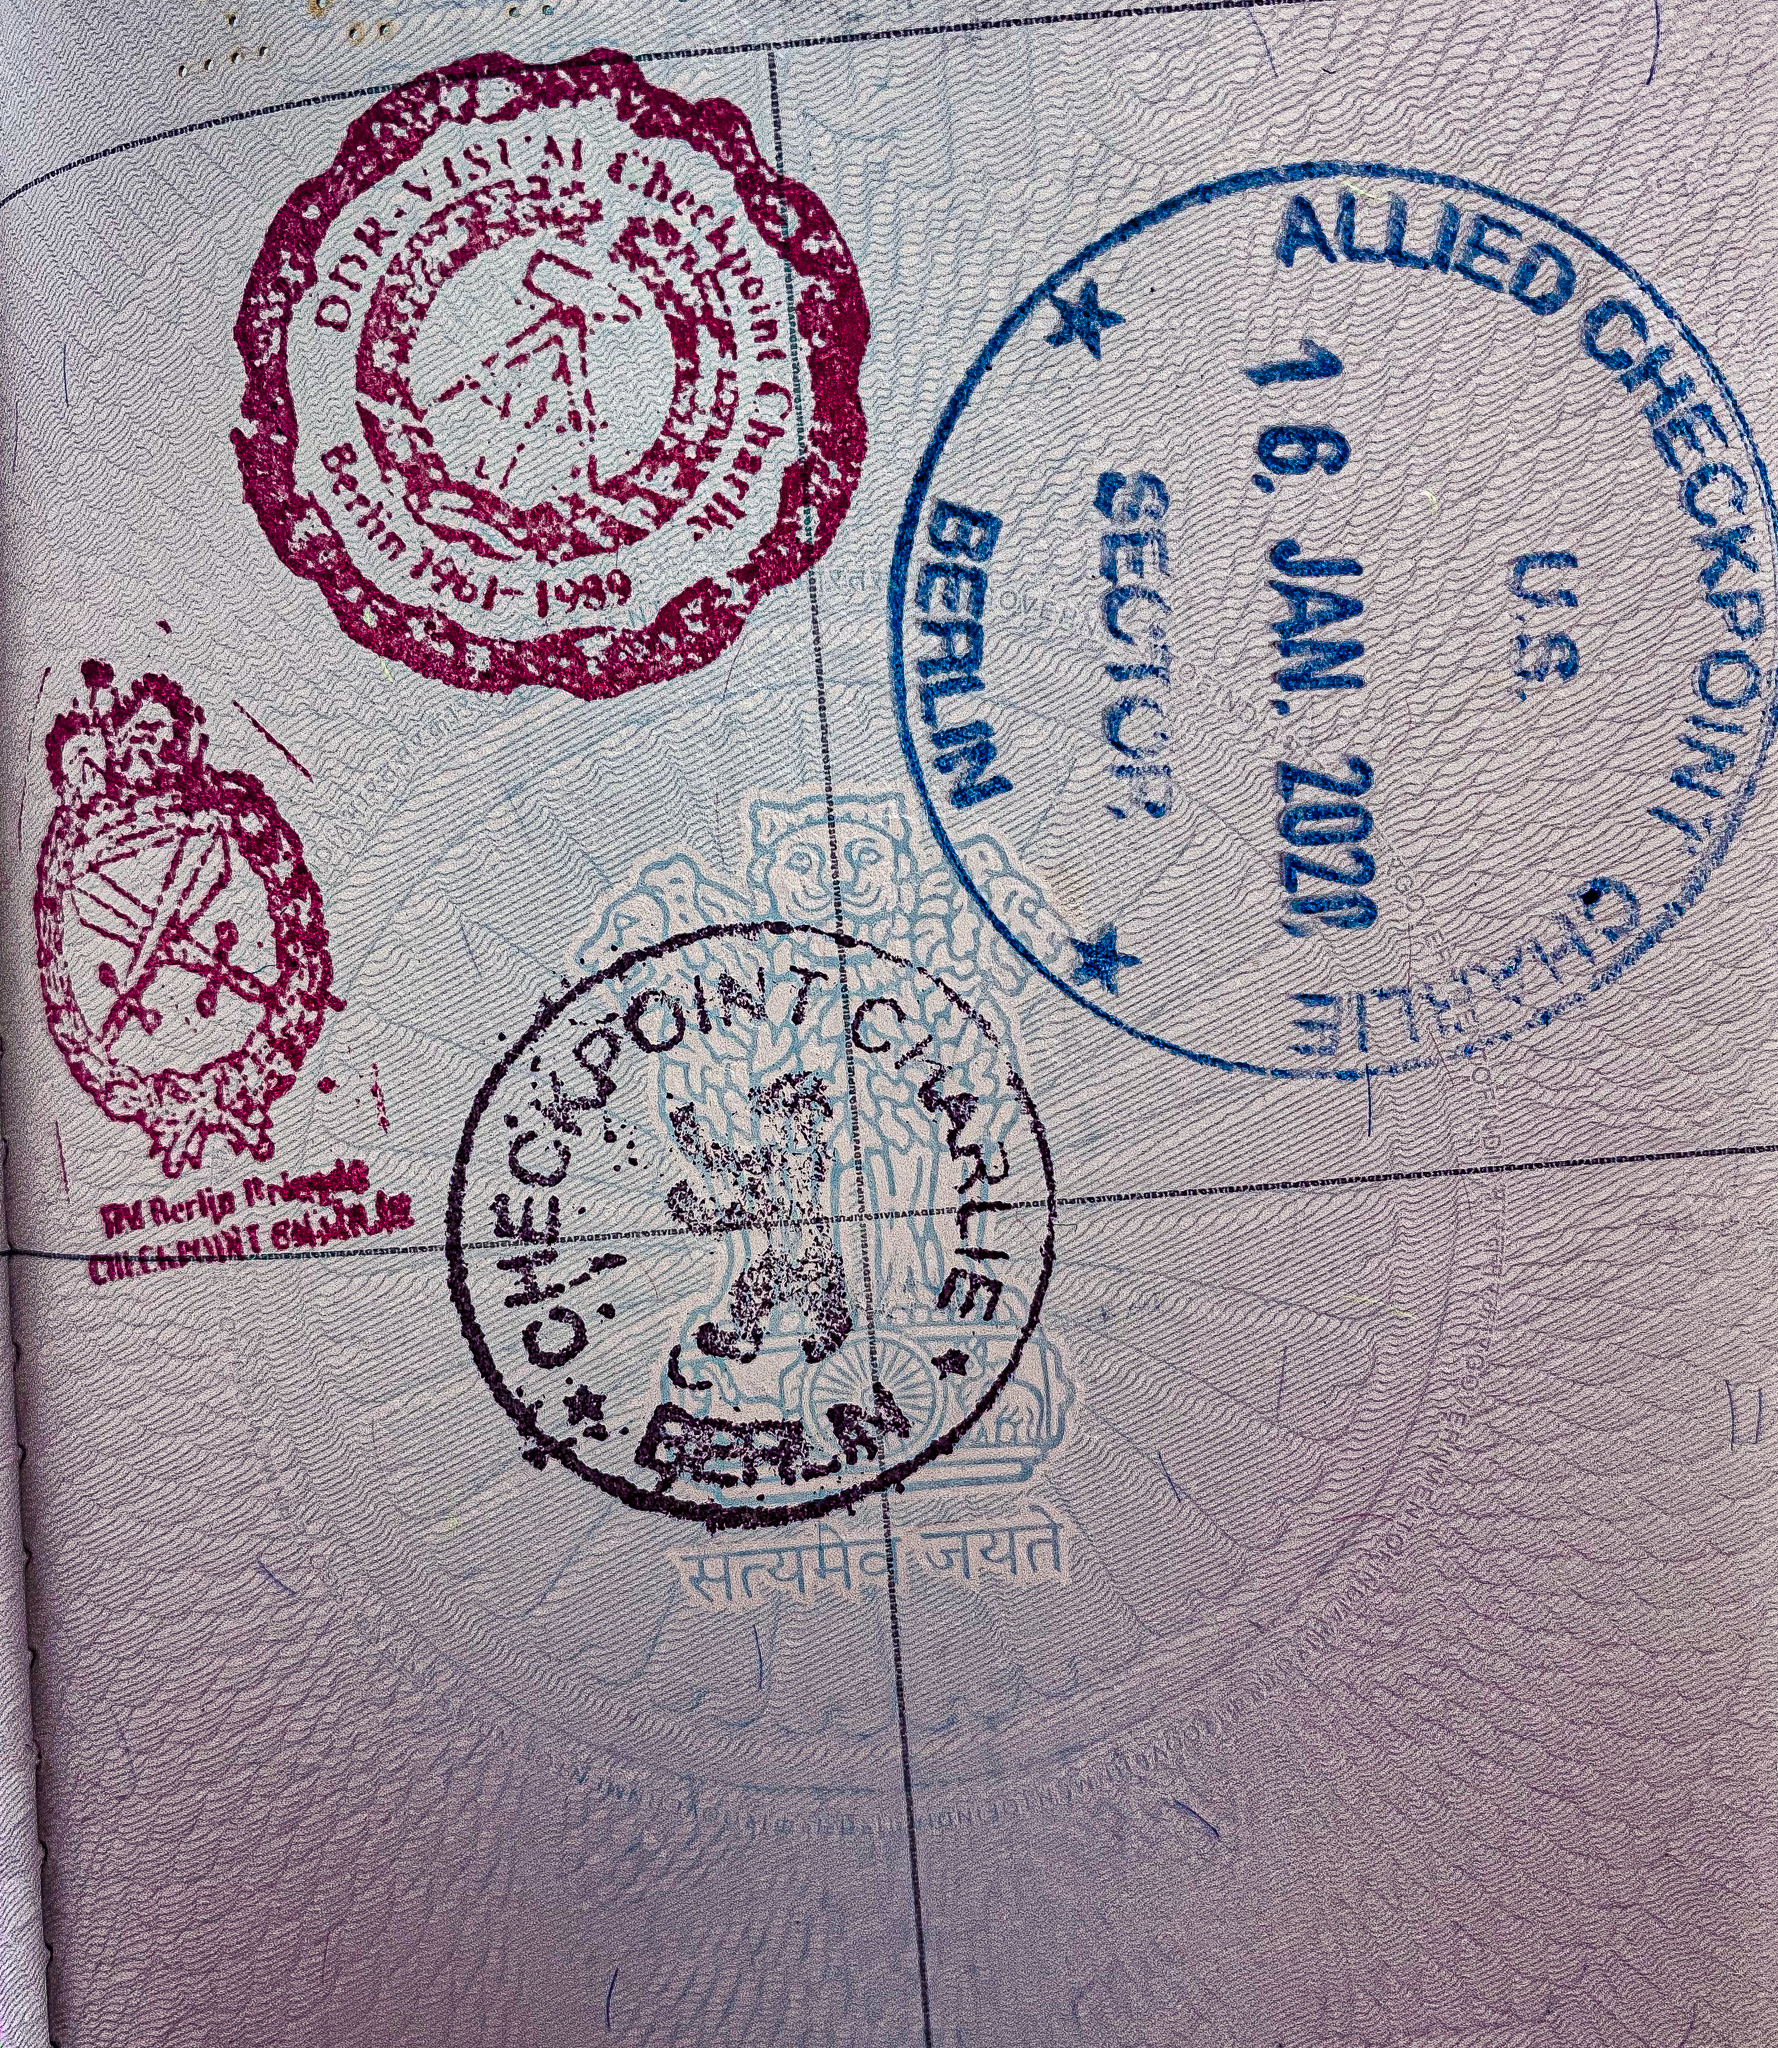 Stamped passport at checkpoint charlie